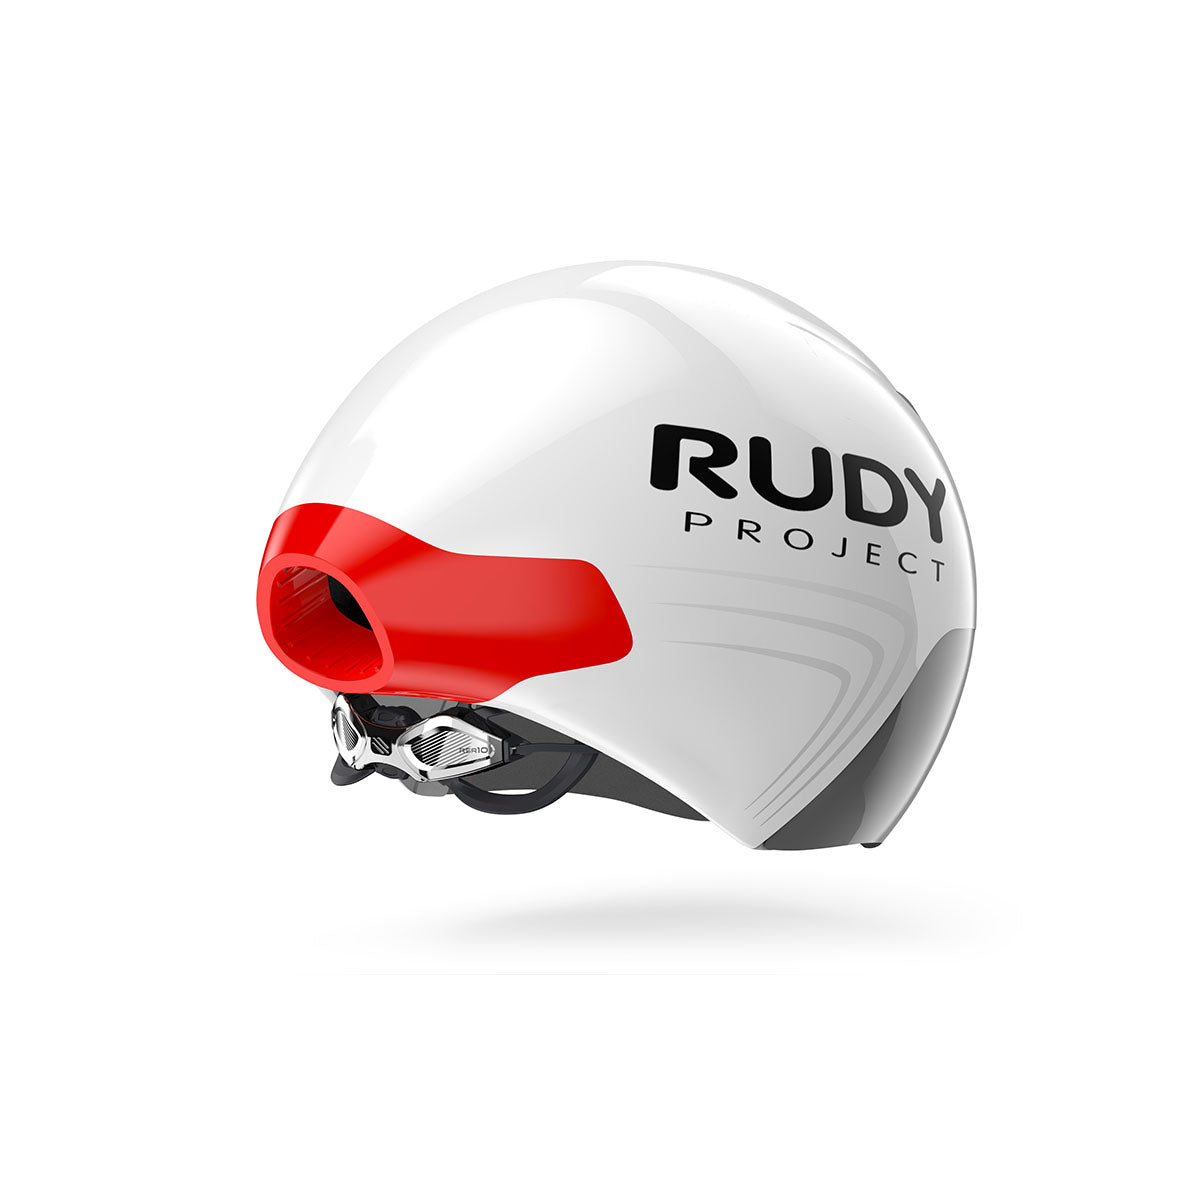 Rudy Project - The Wing - color: White - photo angle: Back Angle Variant Hover Image